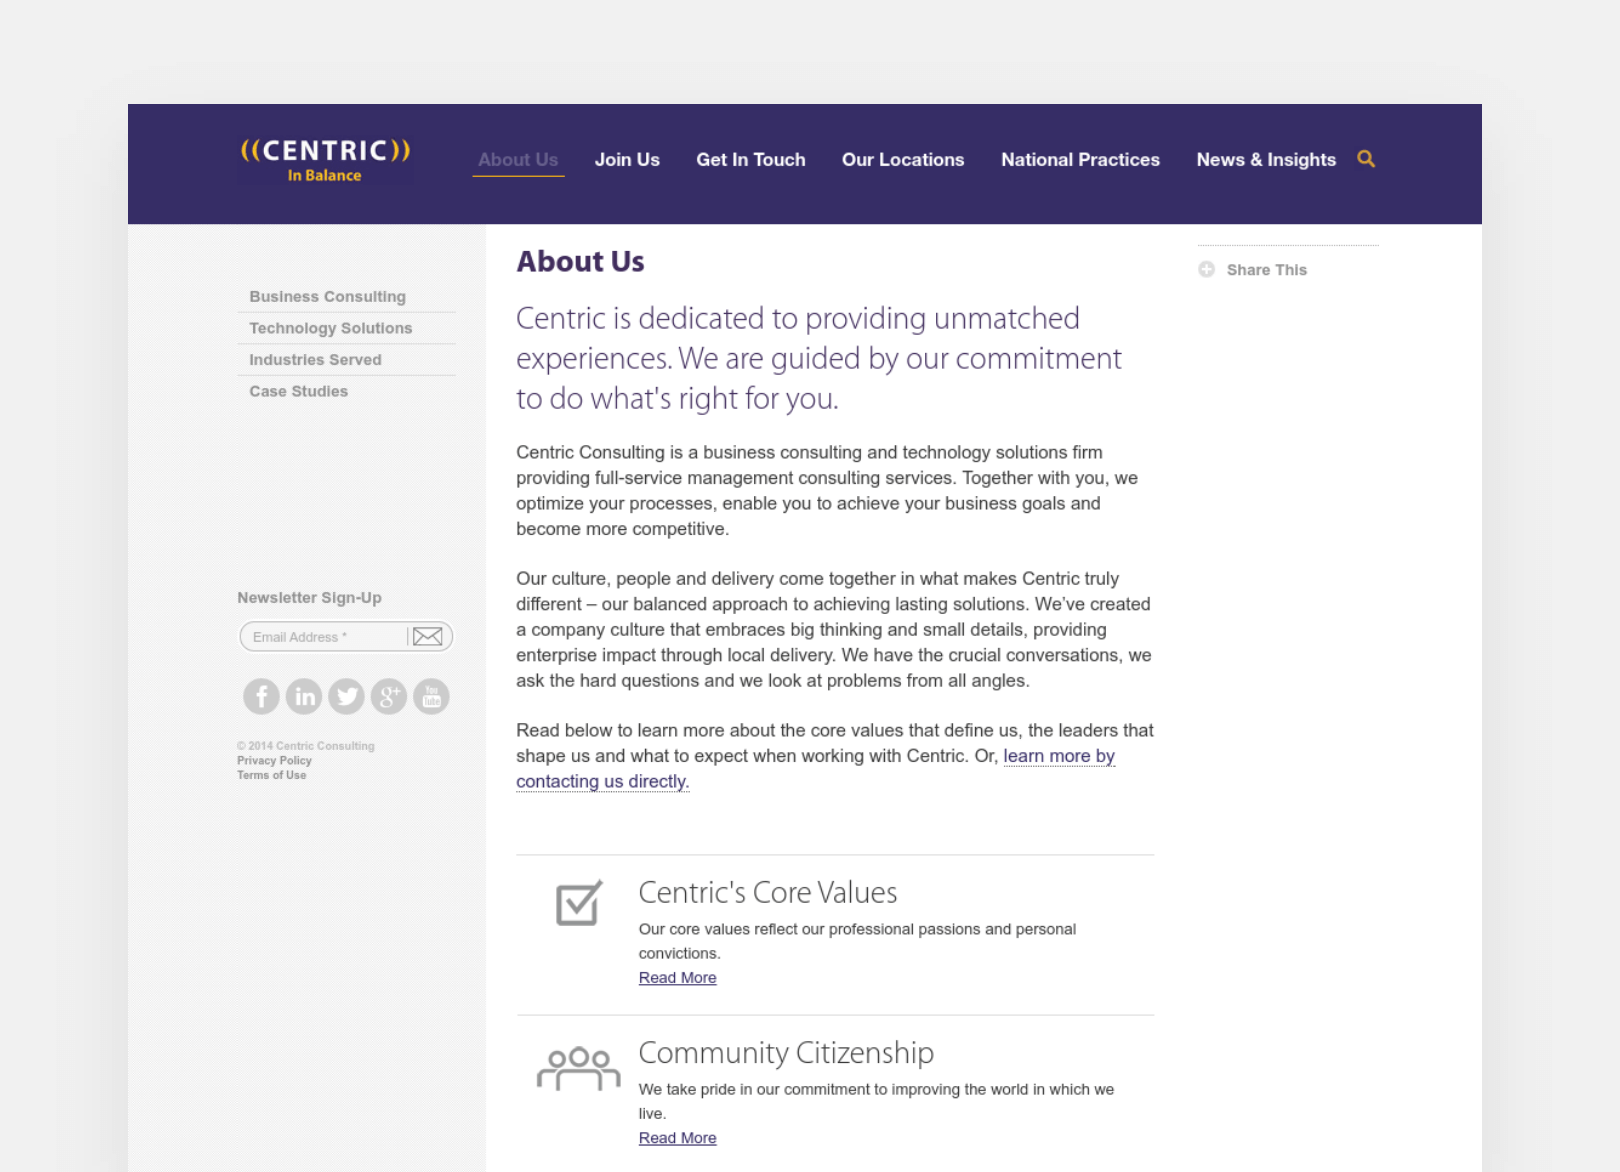 Centric Consulting About Us page screenshot